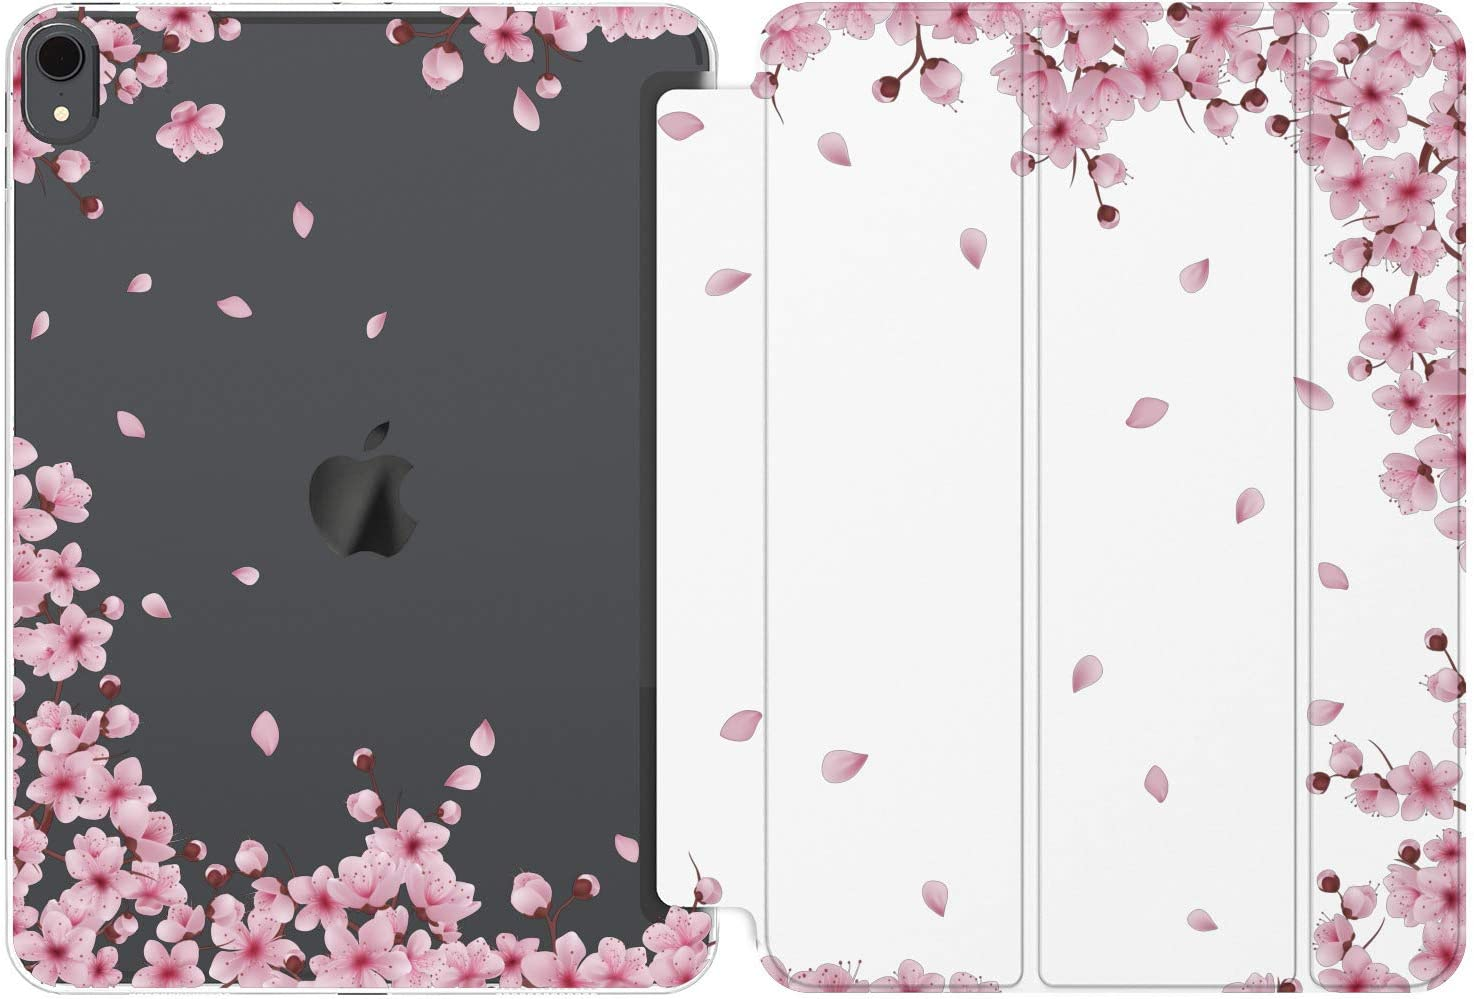 Cavka Case for Apple iPad Air 4th 2020 Gen 3th 10.2 12.9 Pro 11 10.5 9.7 Mini 5 4 3 2 1 Blossom Japanese Cherry Print Magnetic Closure Bloom Clear Flower Sakura Pink Smart Cover Spring